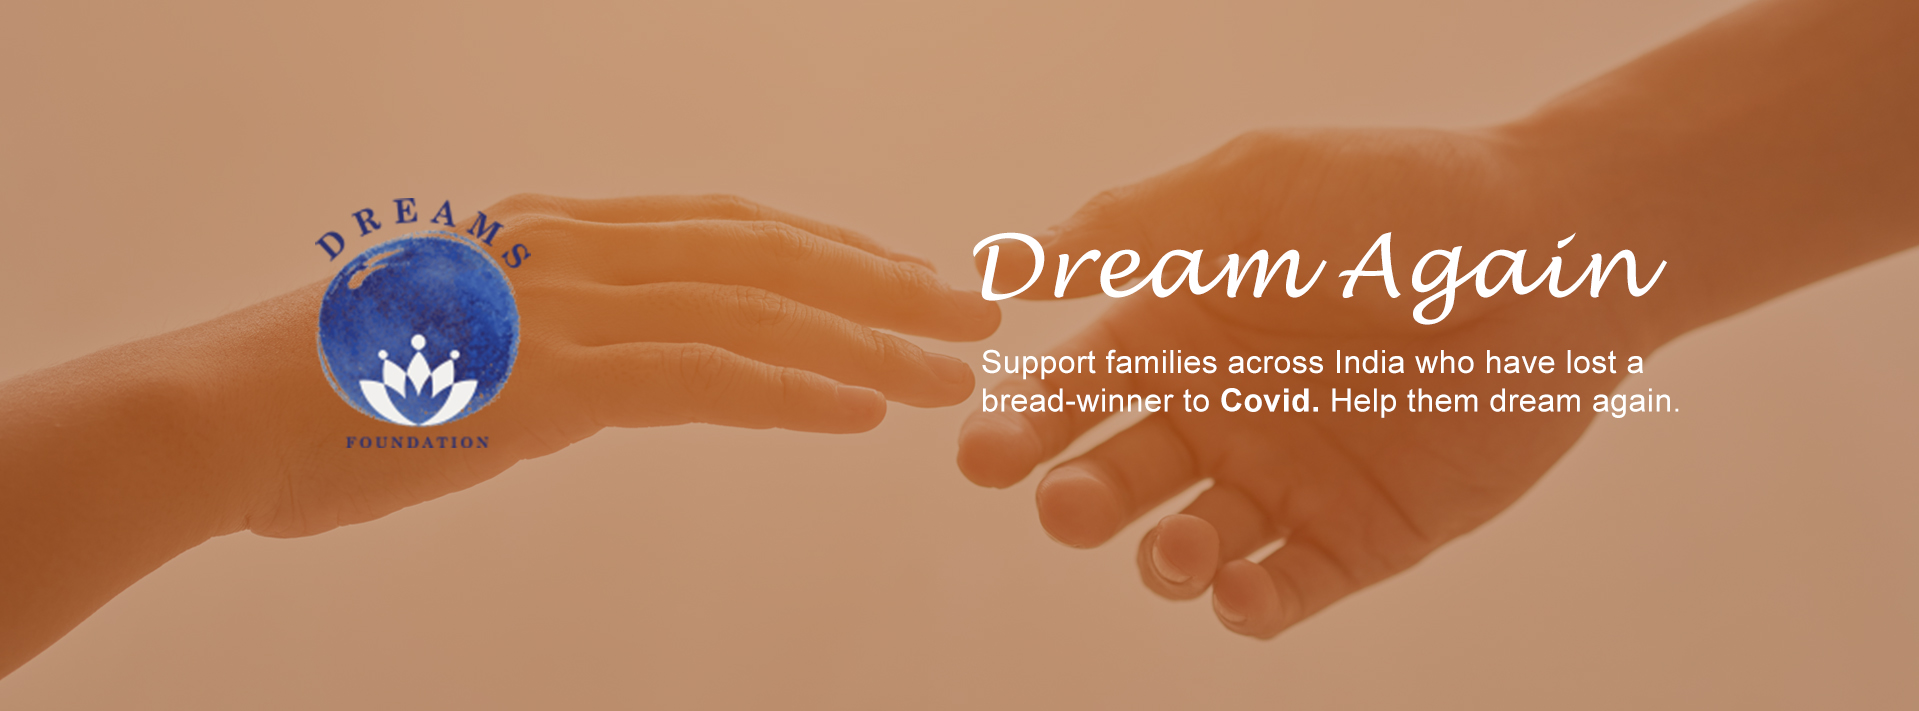 Support families who have lost a breadwinner to COVID. Help them dream again...